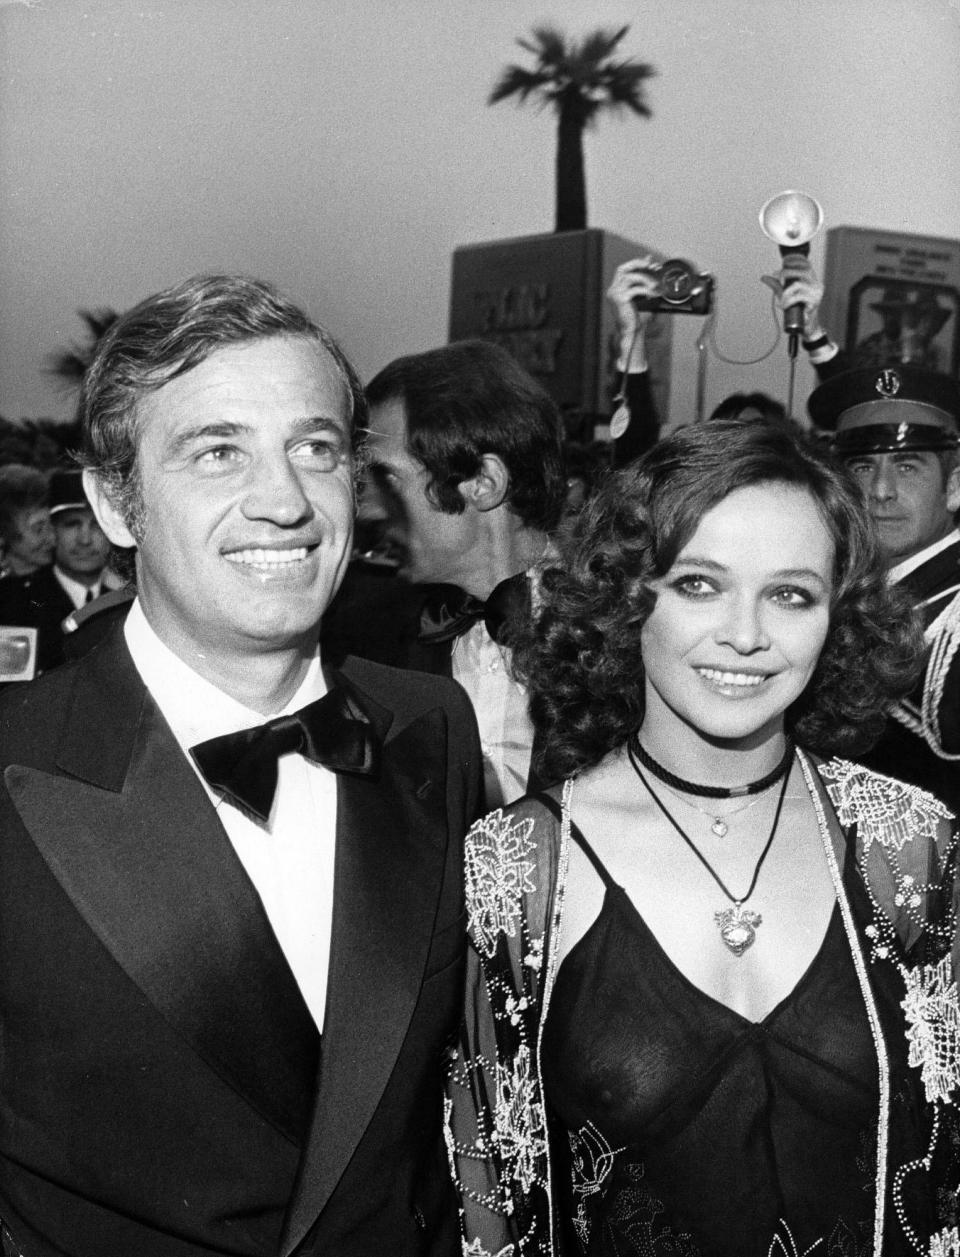 """FILE - In this June 16, 1974 file photo, French actor Jean-Paul Belmondo and actress Laura Antonelli of Italy arrive at Festival House for presentation of film """" Stavisky"""", on June 16, 1974. French New Wave actor Jean-Paul Belmondo has died, according to his lawyer's office on Monday Sept. 6, 2021. (AP Photo/Levy, File)"""